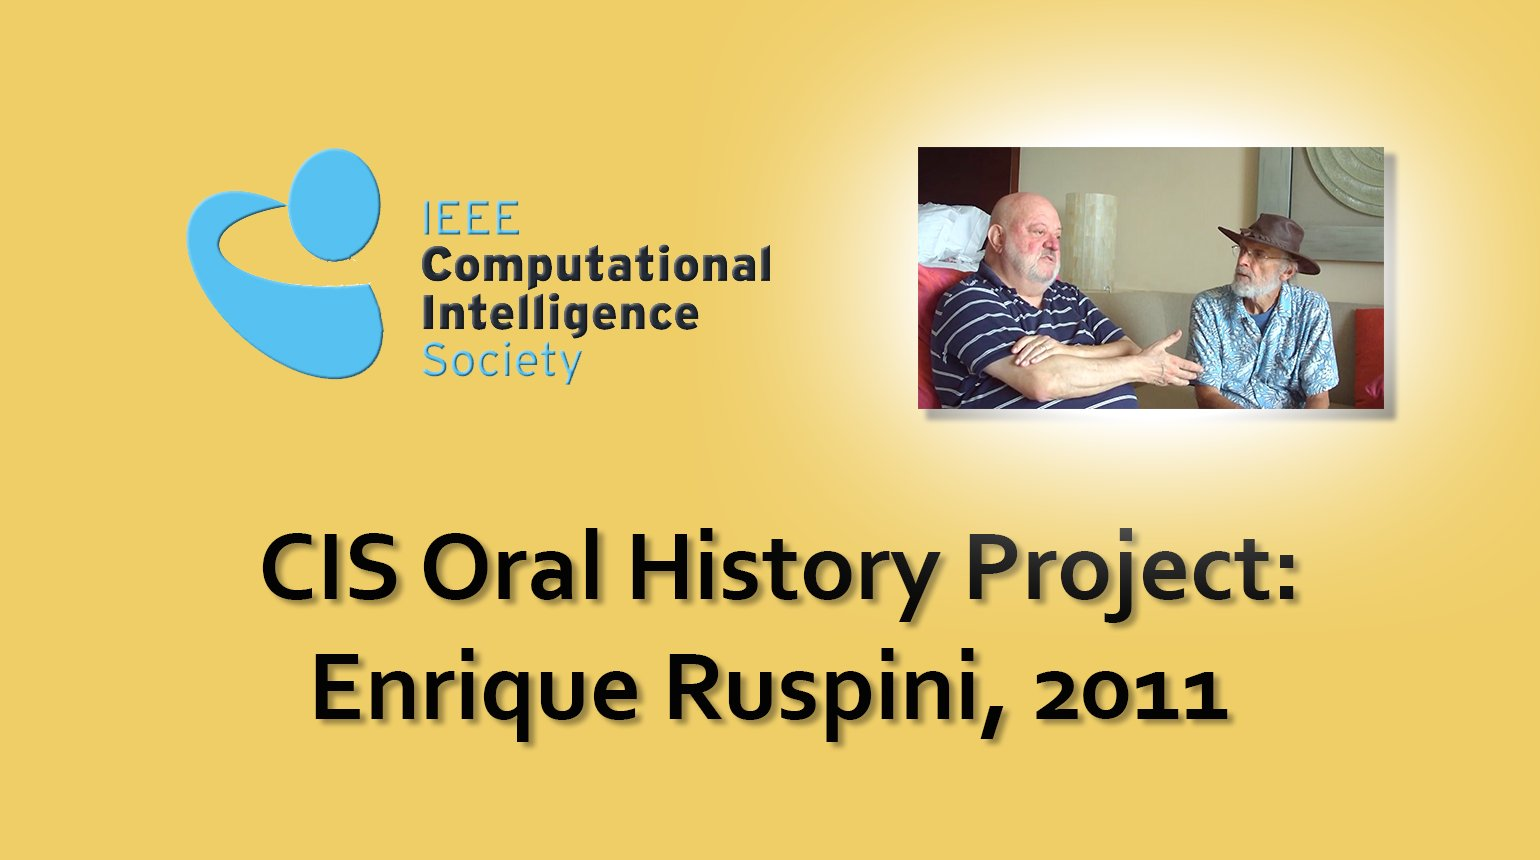 Interview with Enrique Ruspini, 2011: CIS Oral History Project